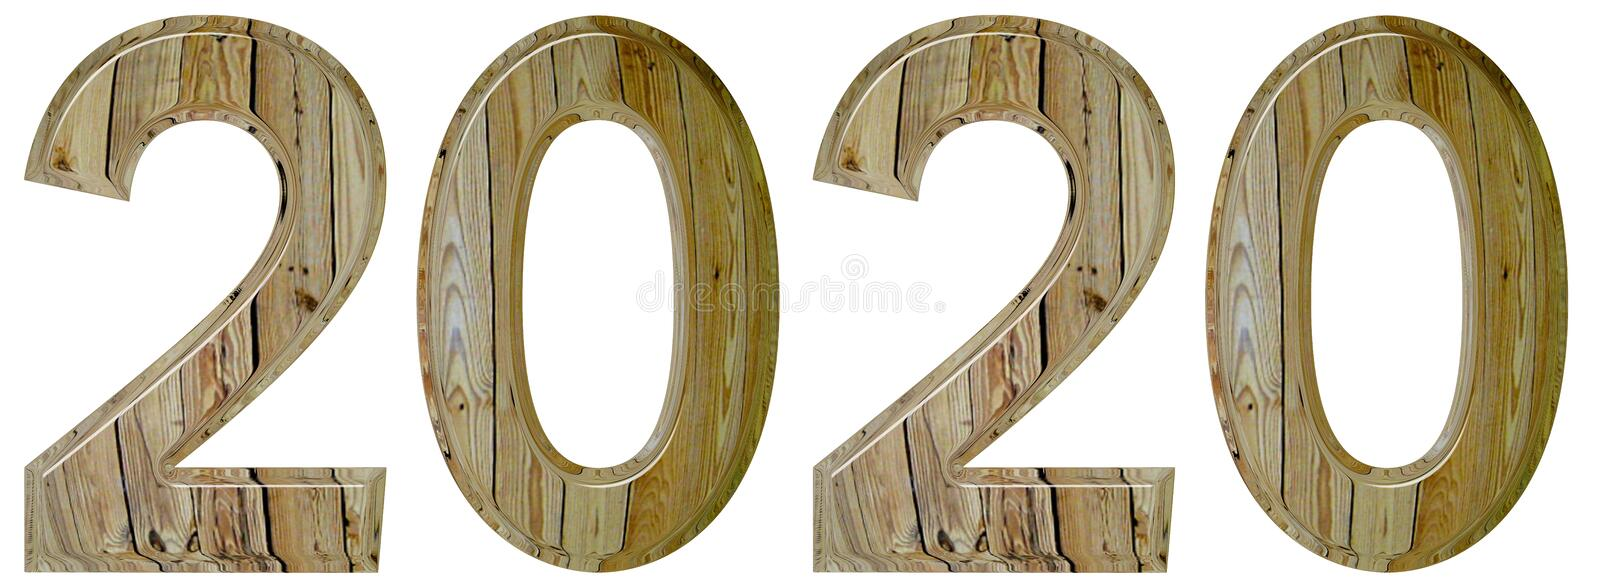 Numeral 2020 with an abstract pattern of a wooden surface, isolated on white background, 3d render royalty free stock images